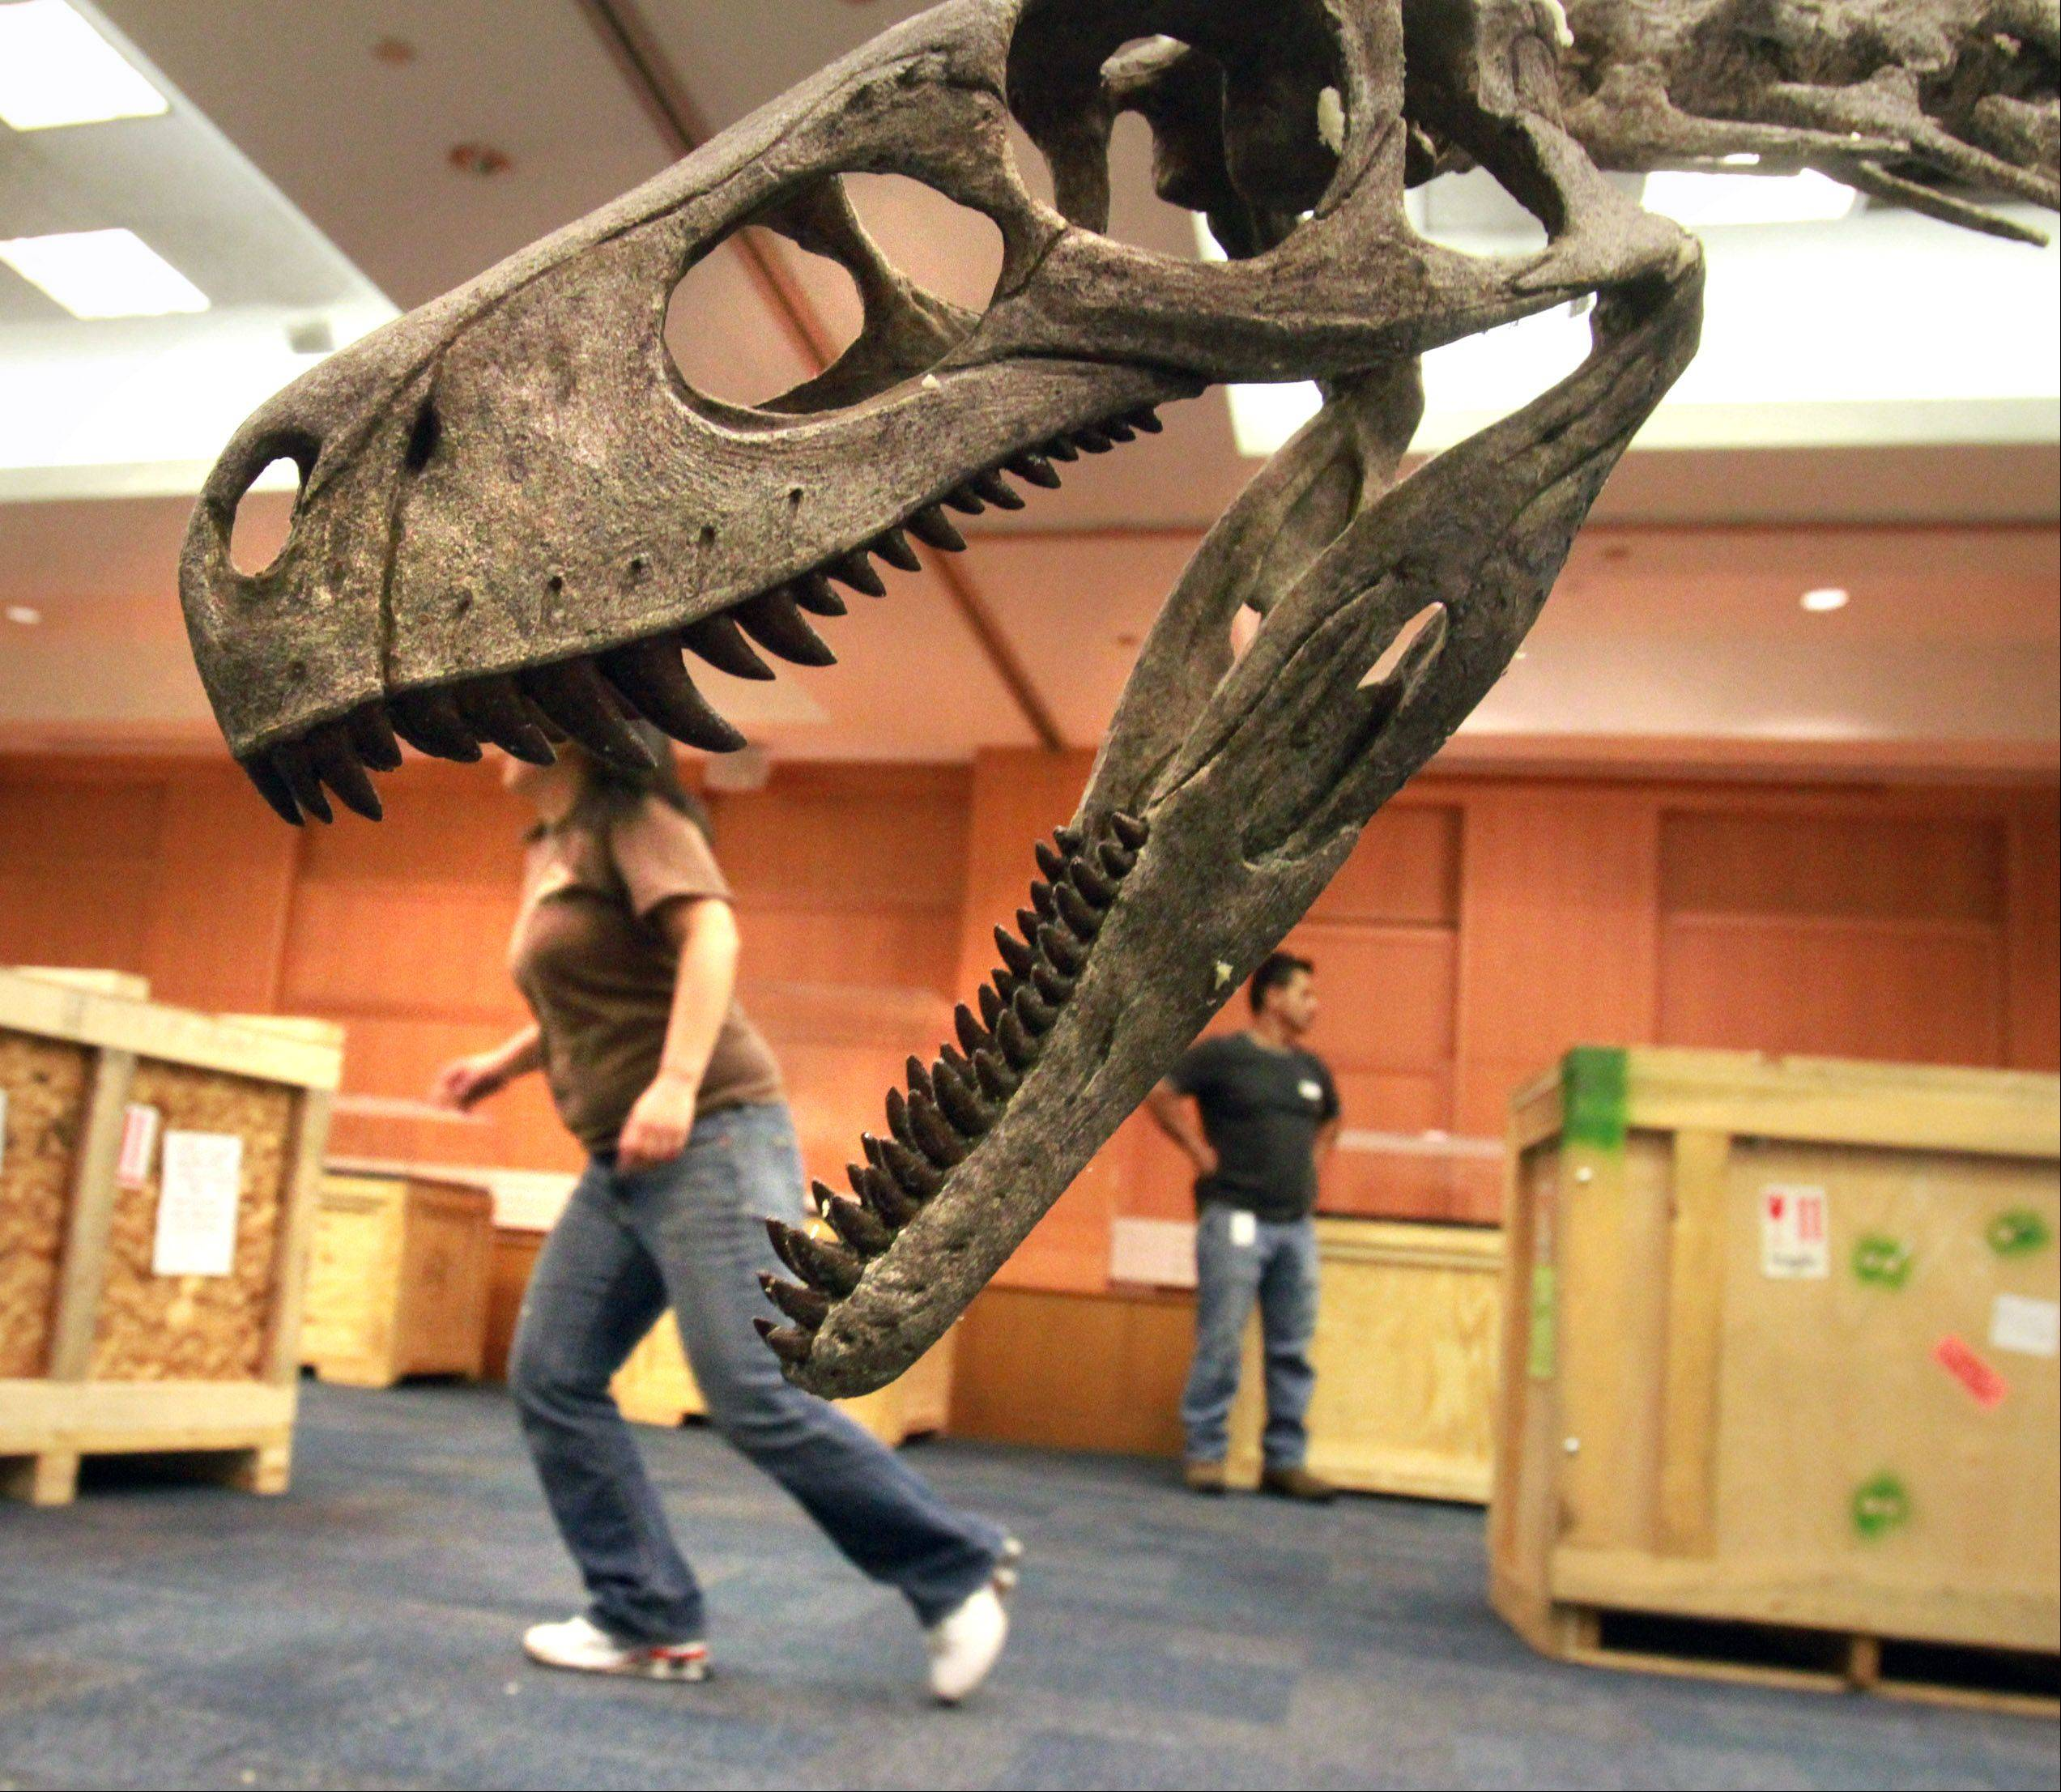 May Her runs to get tools to unpack a second crate, in front of a replica Herrerasaurus.